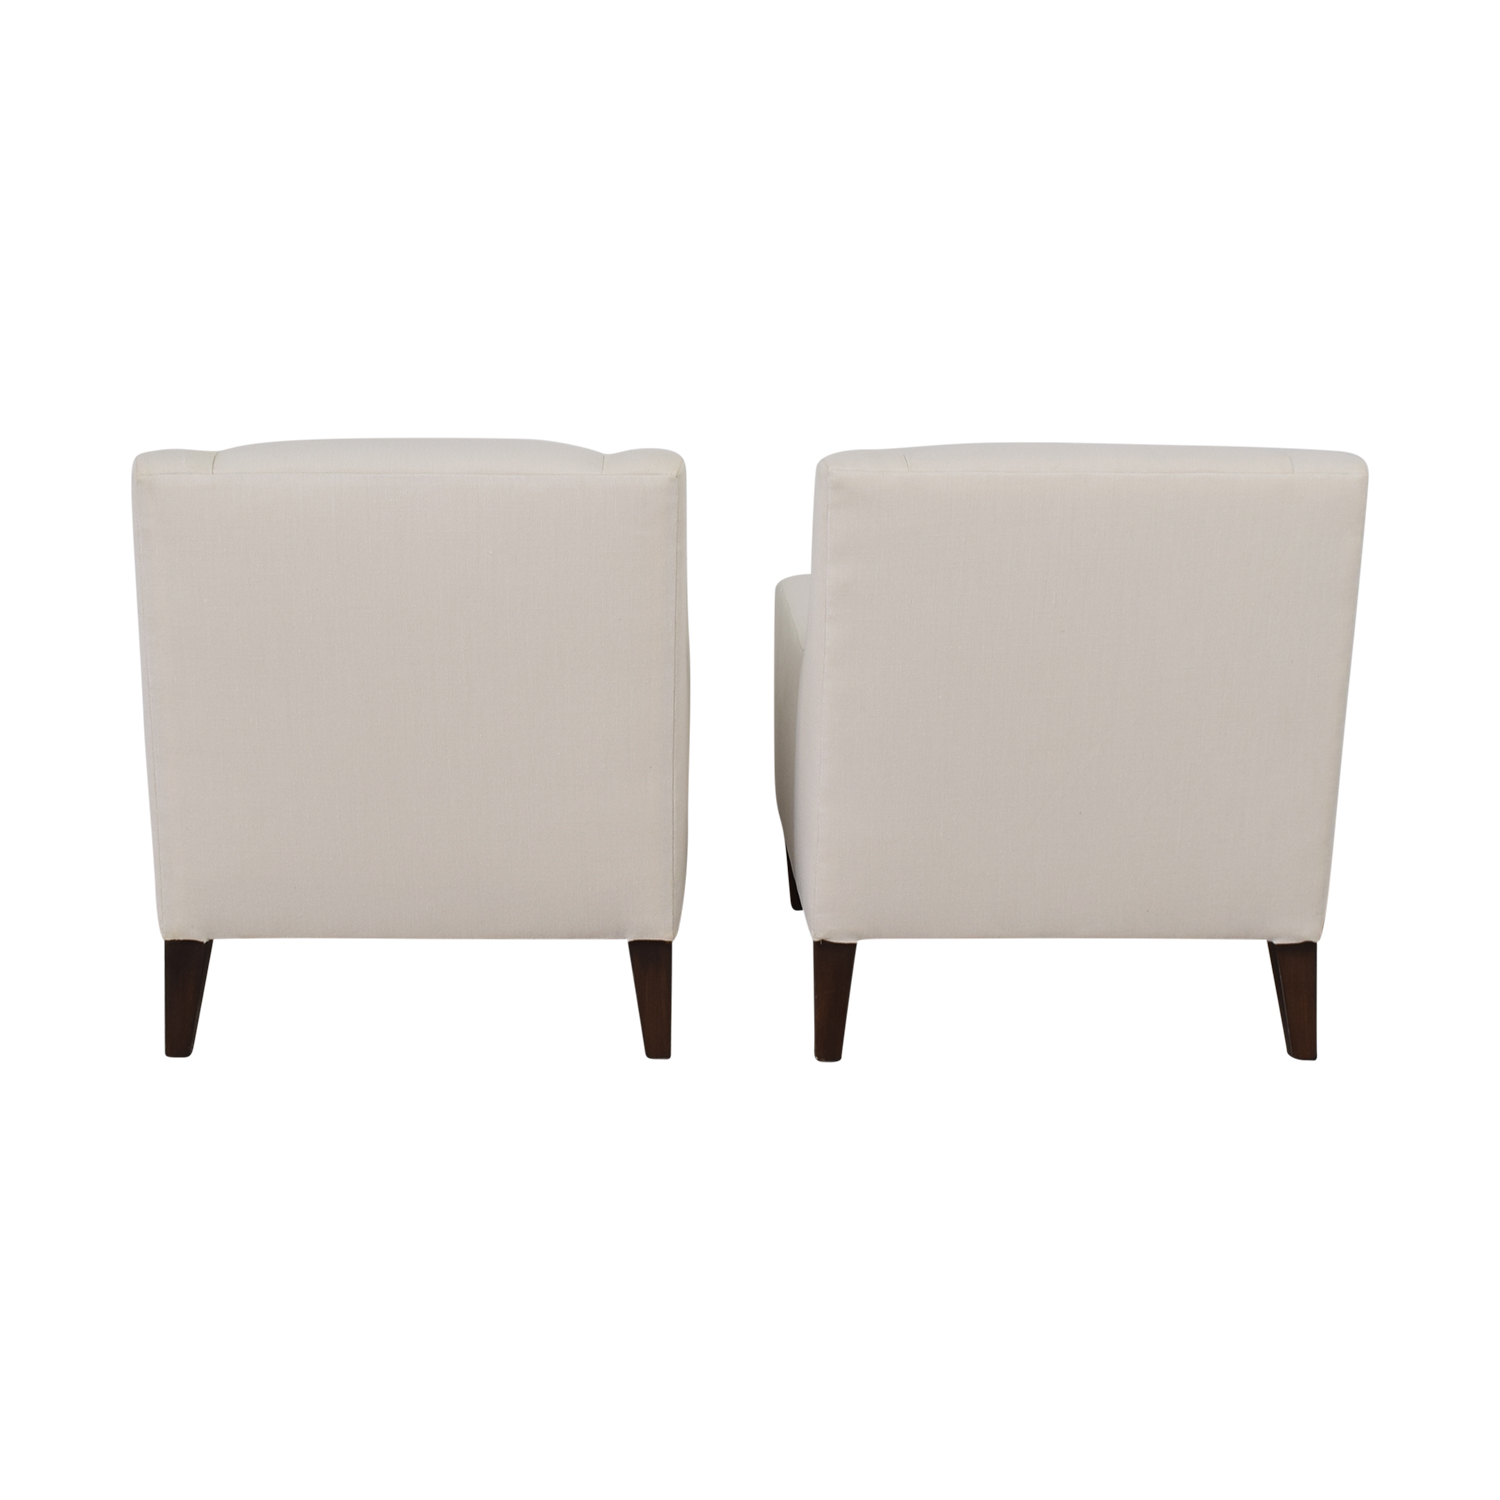 buy Furniture Masters Furniture Masters Neutral Sleek Club Chairs online